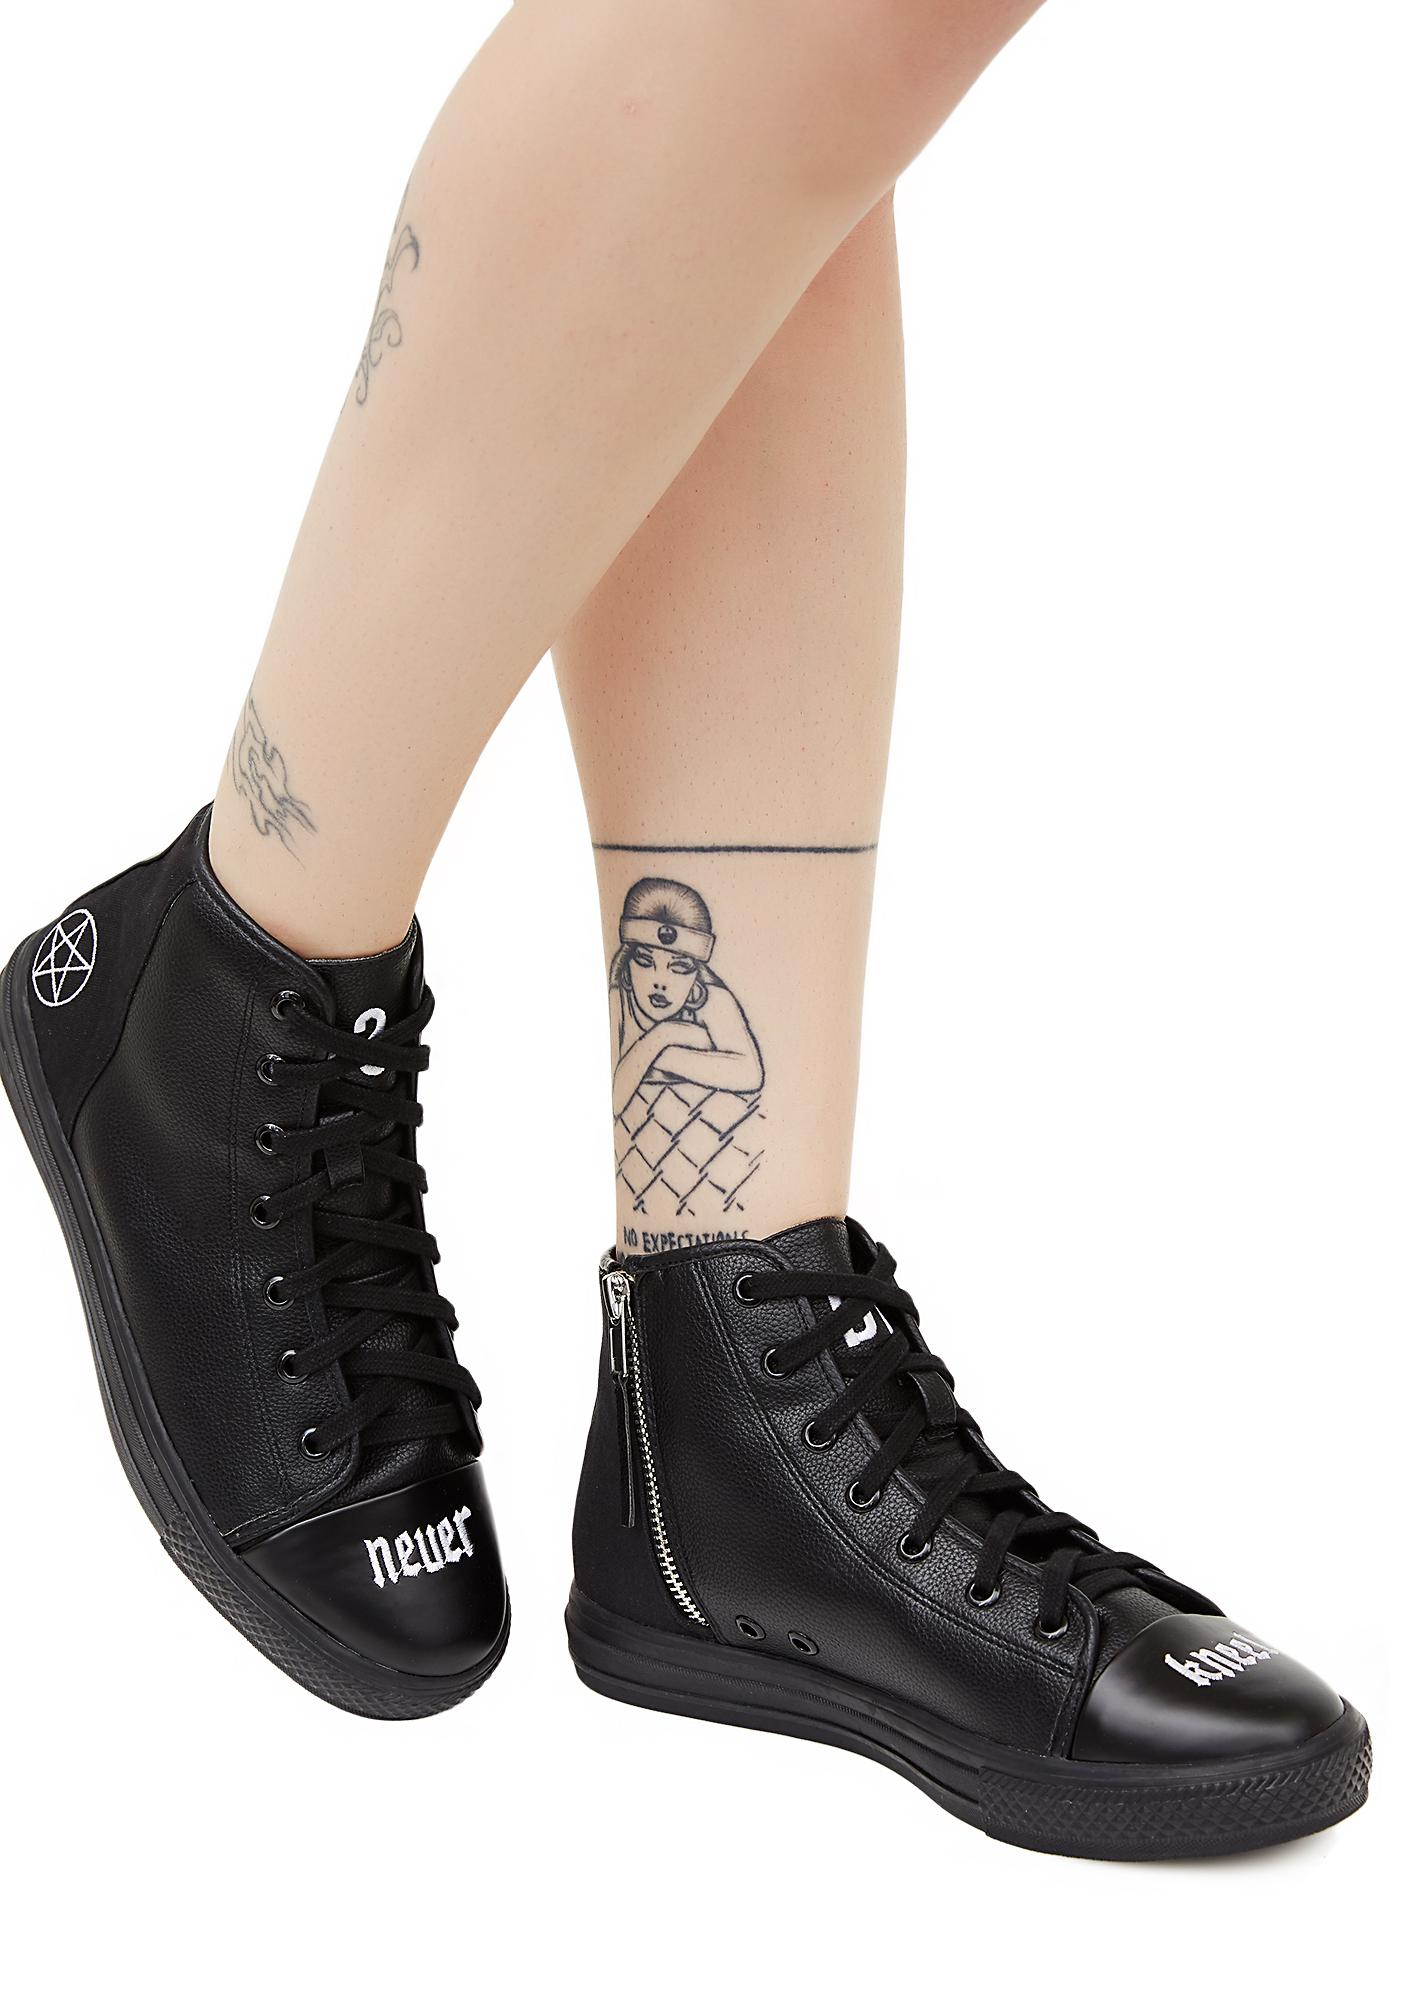 Disturbia Never Kneel Sneakers